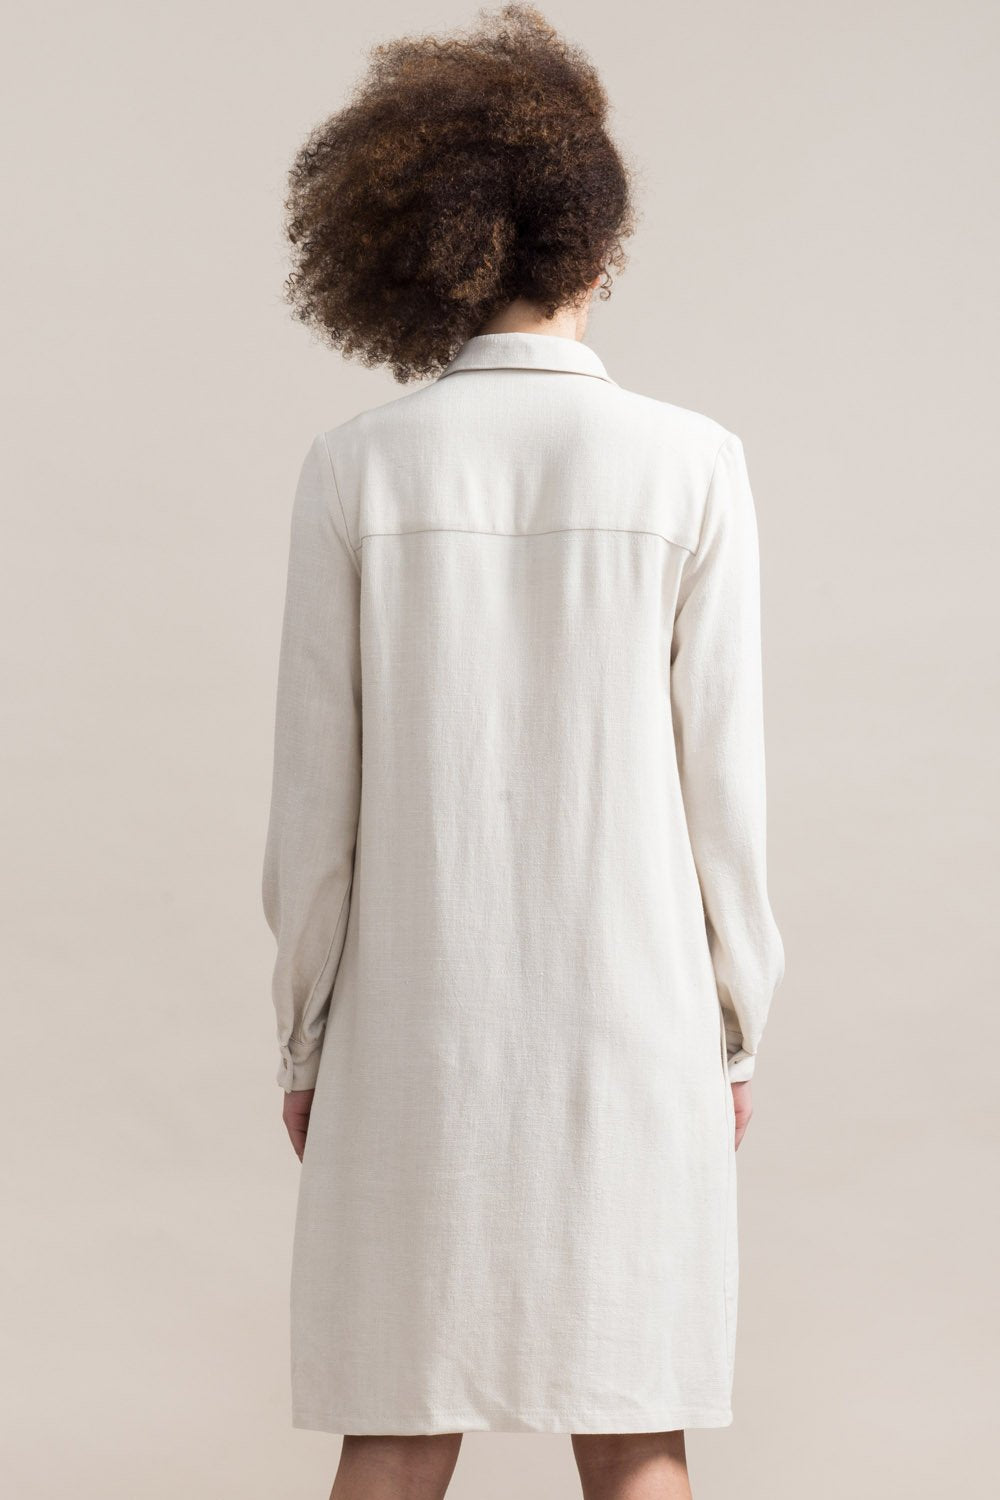 JENNIFER GLASGOW Inari Shirt Dress in Natural (rear view, full length) FW2020/2021